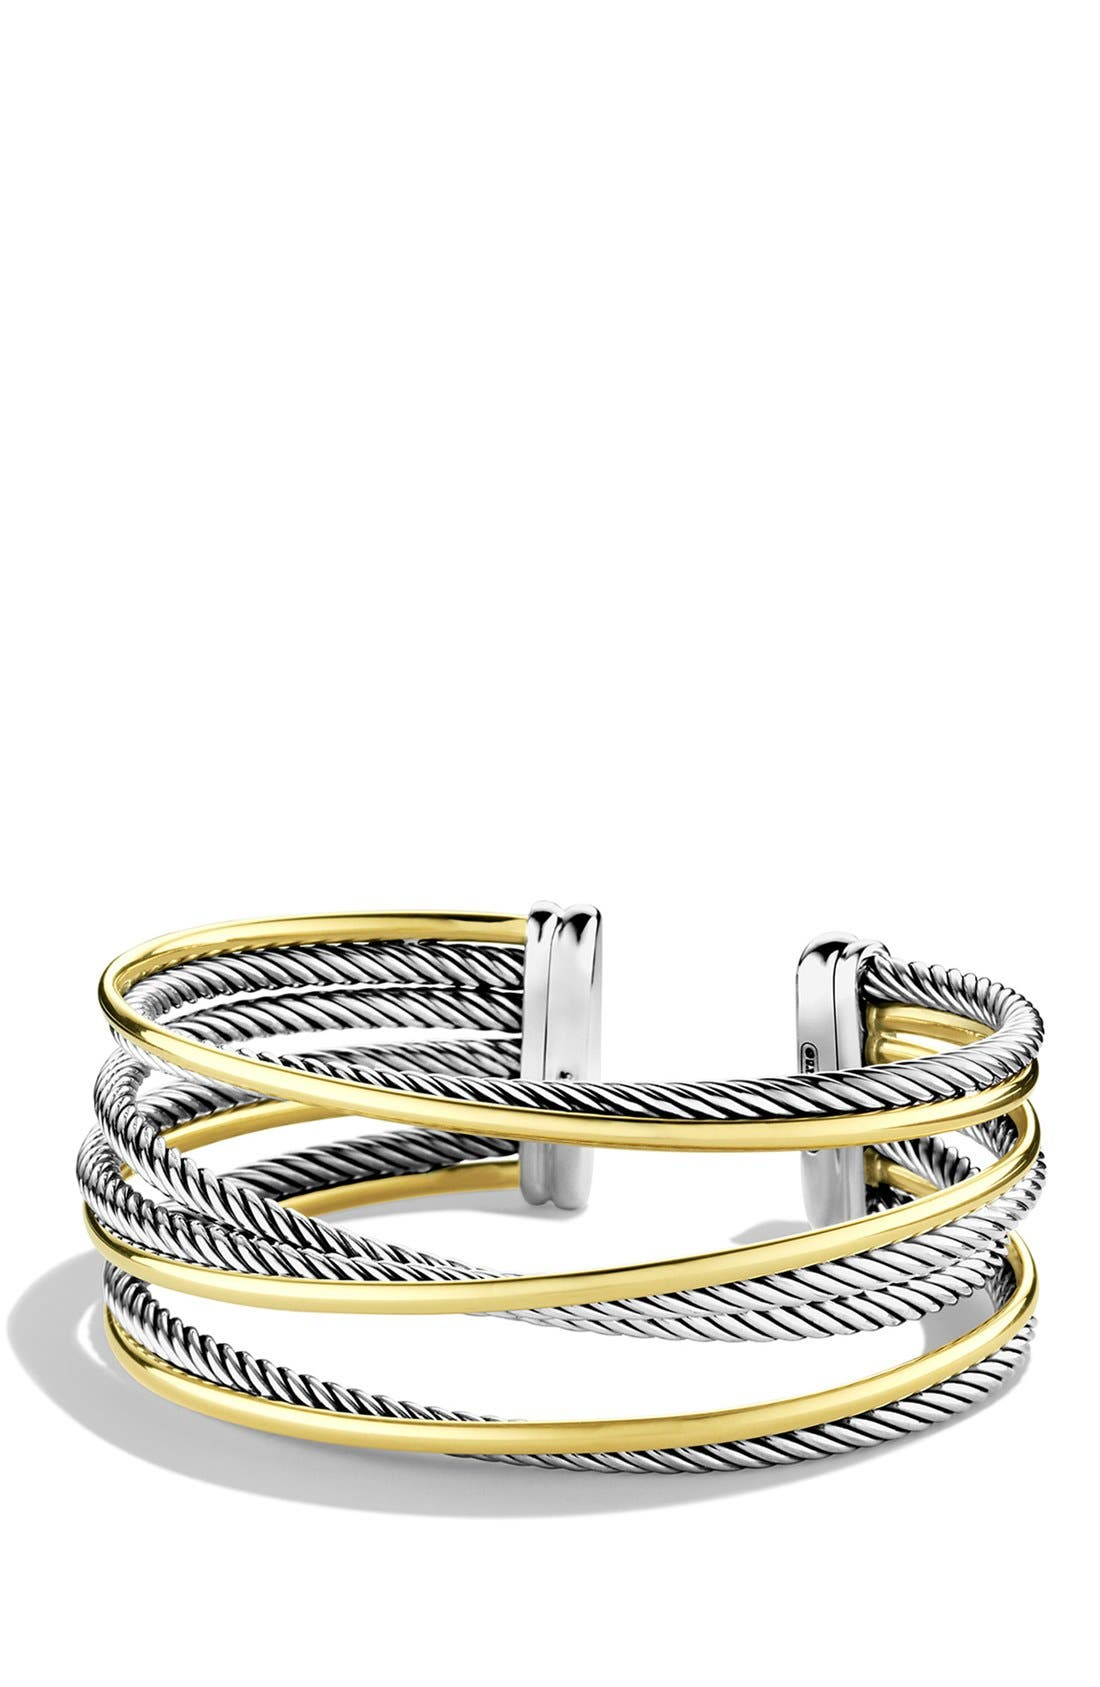 DAVID YURMAN Crossover Four-Row Cuff with Gold